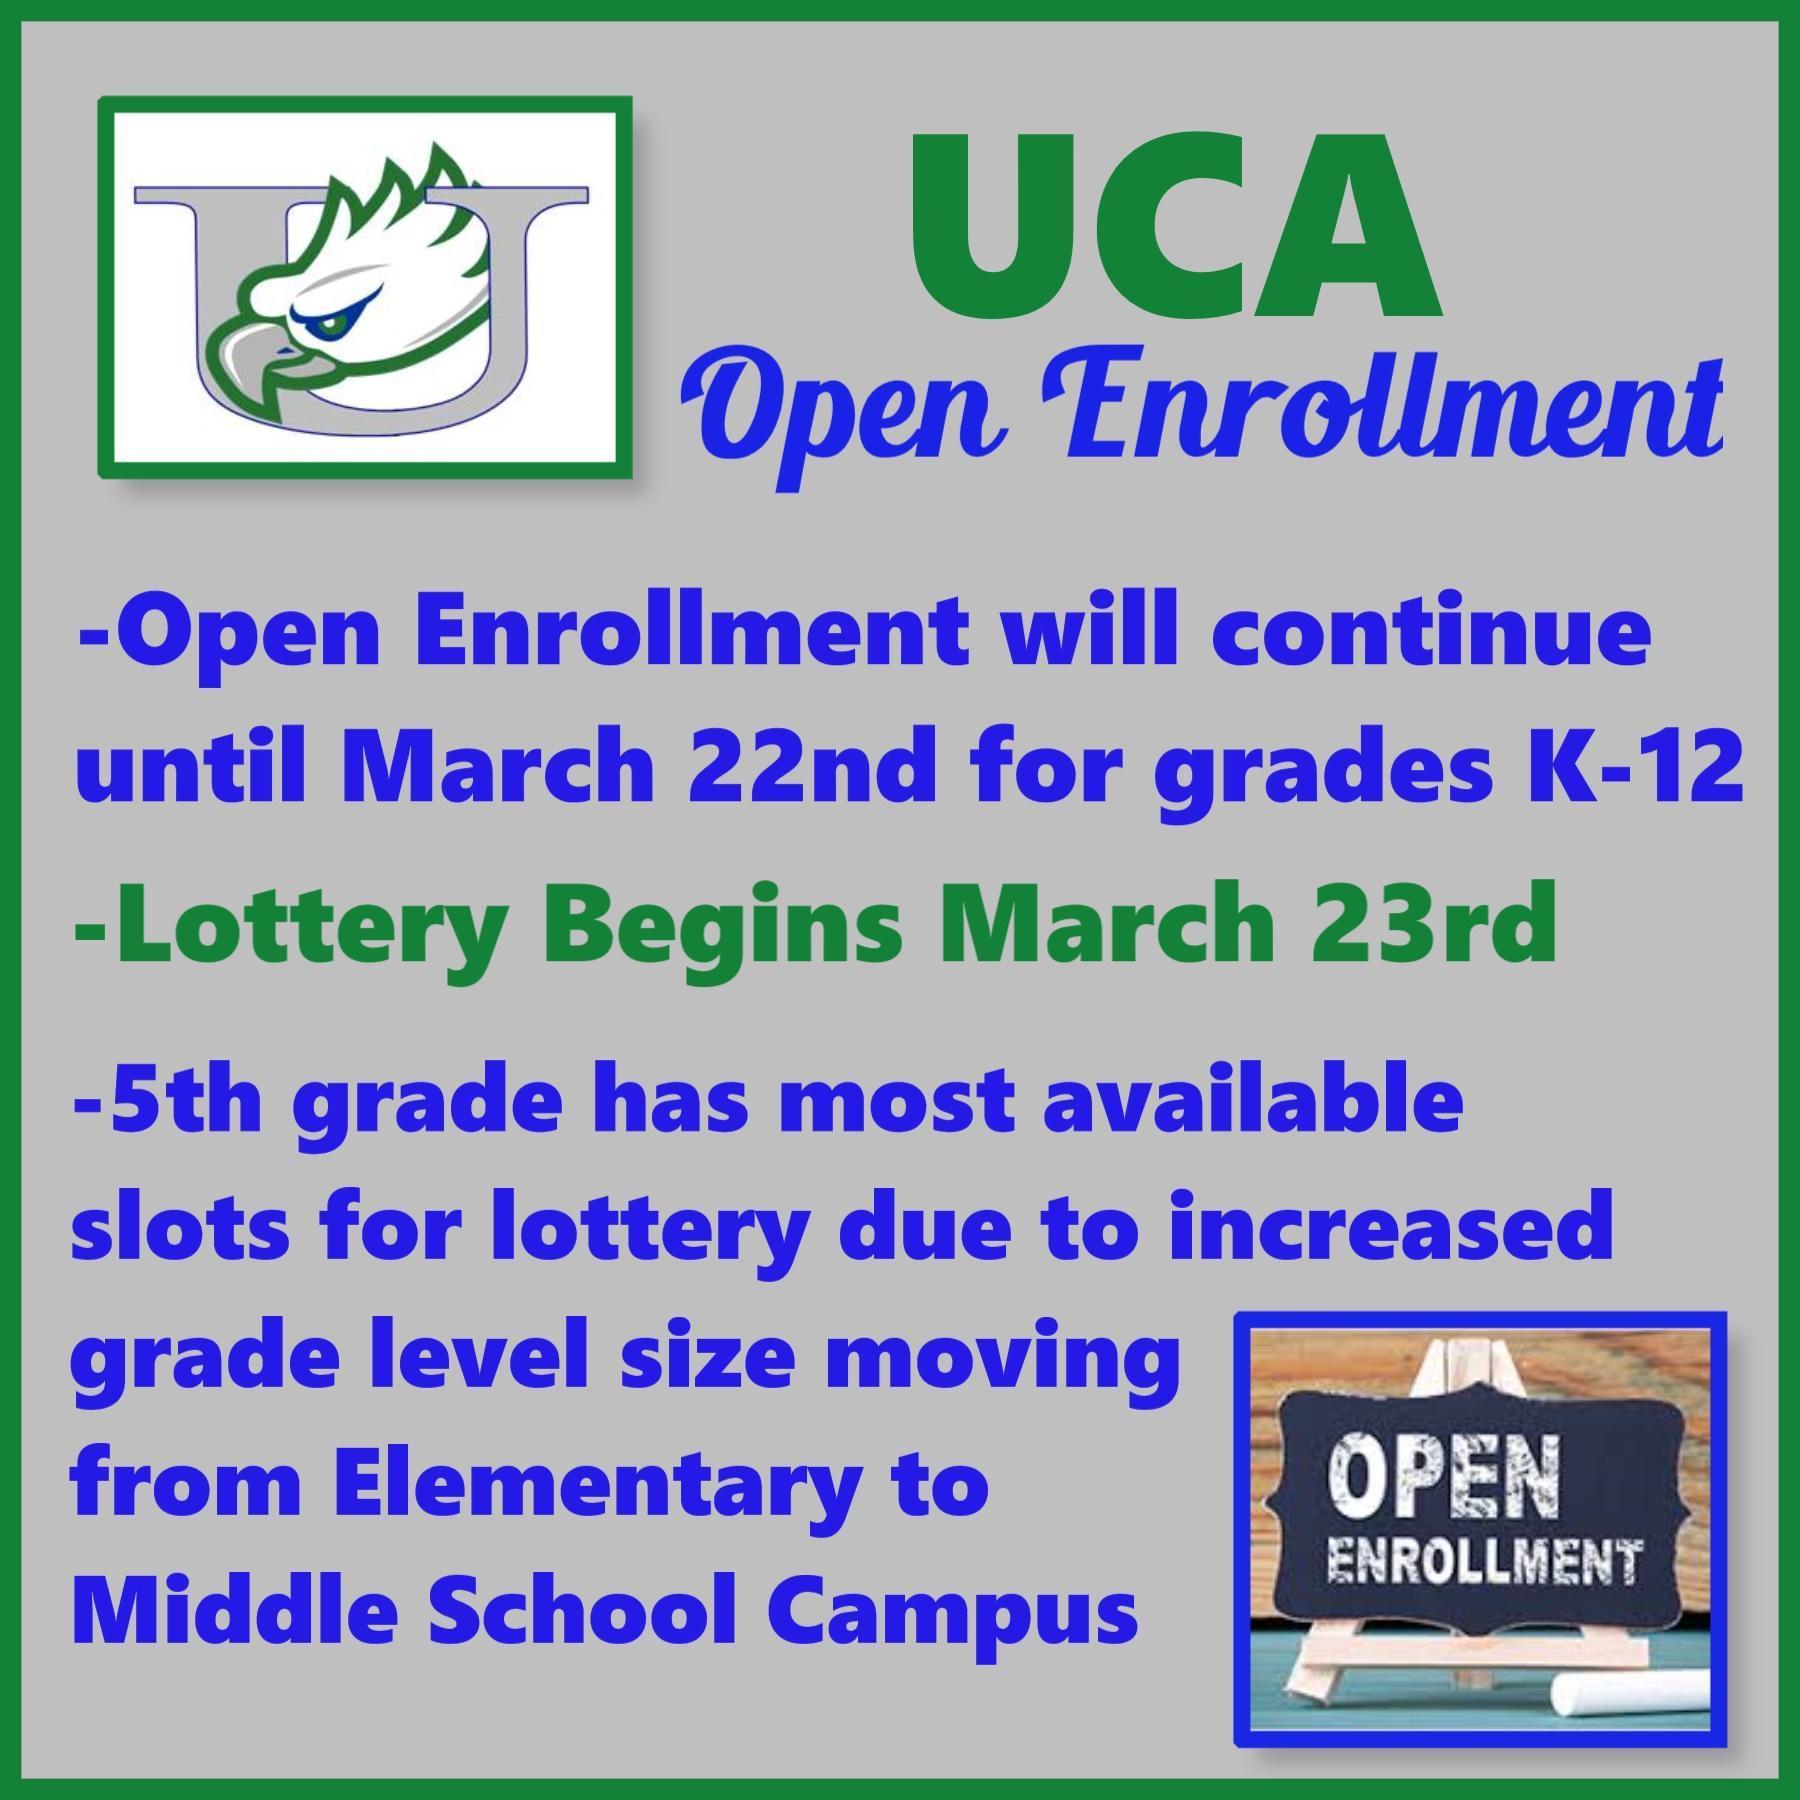 Open Enrollment will continue until March 22nd for grades K-12 Image